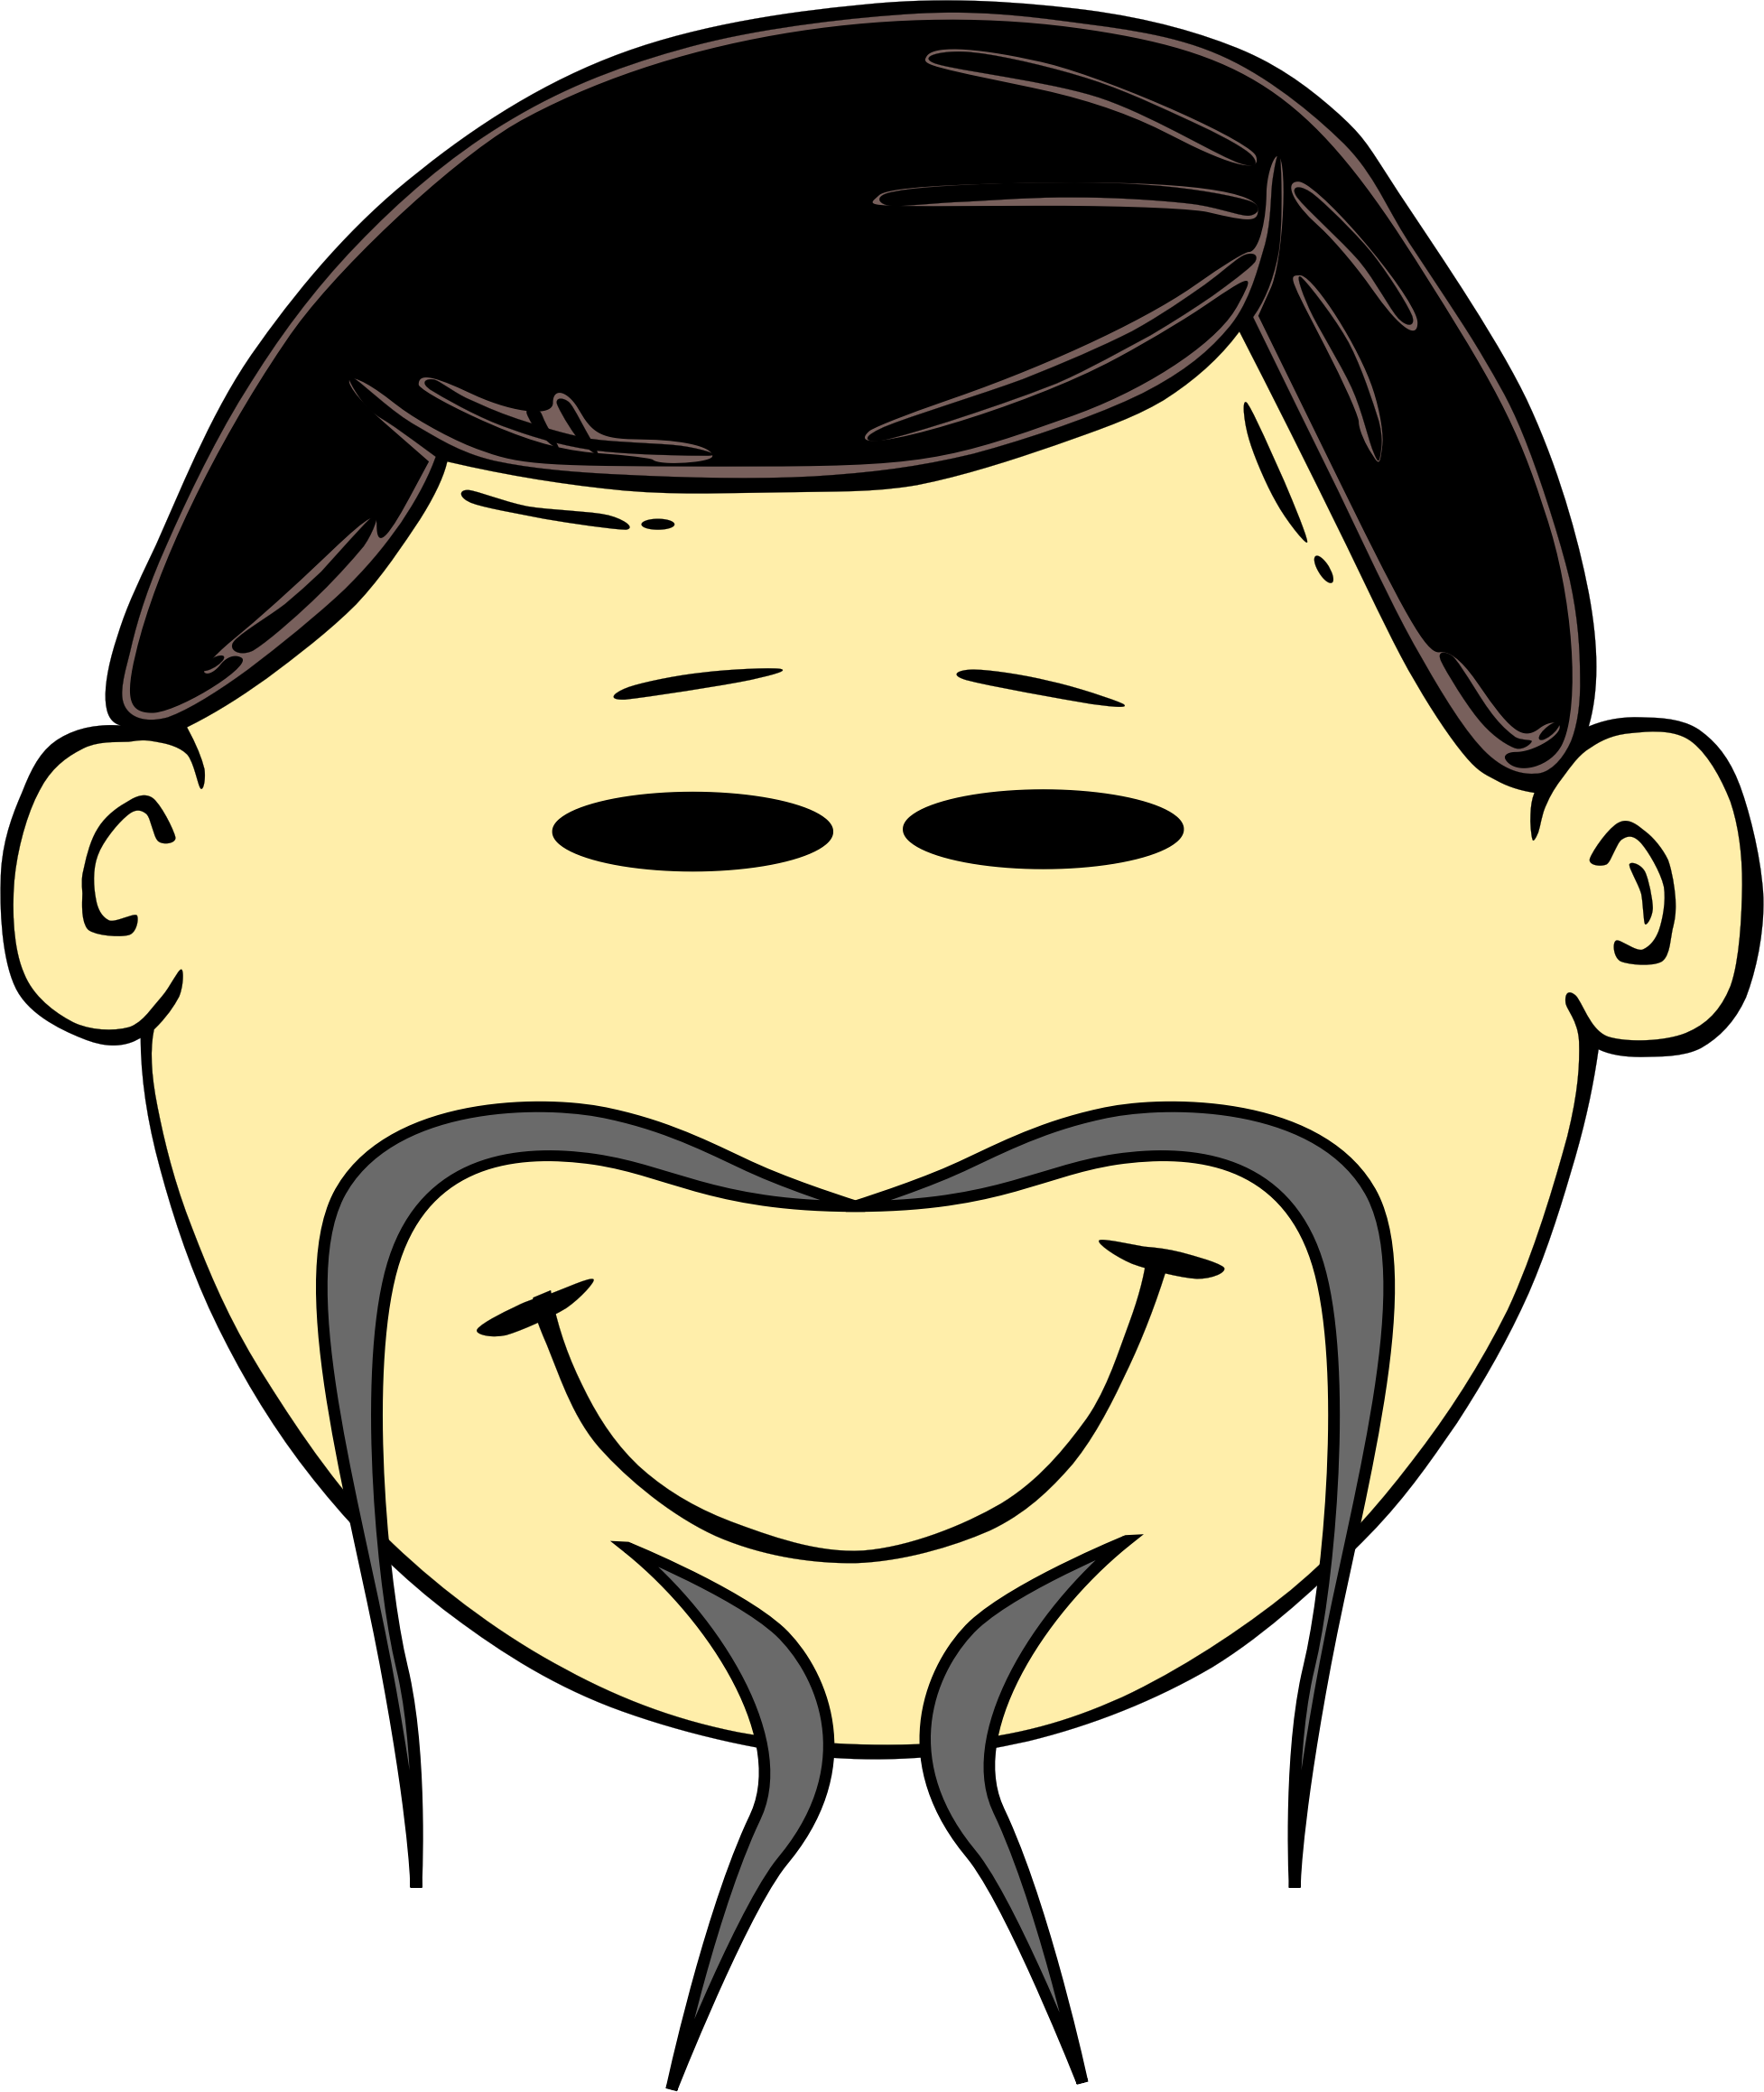 Chinese big image png. Important clipart fascinating